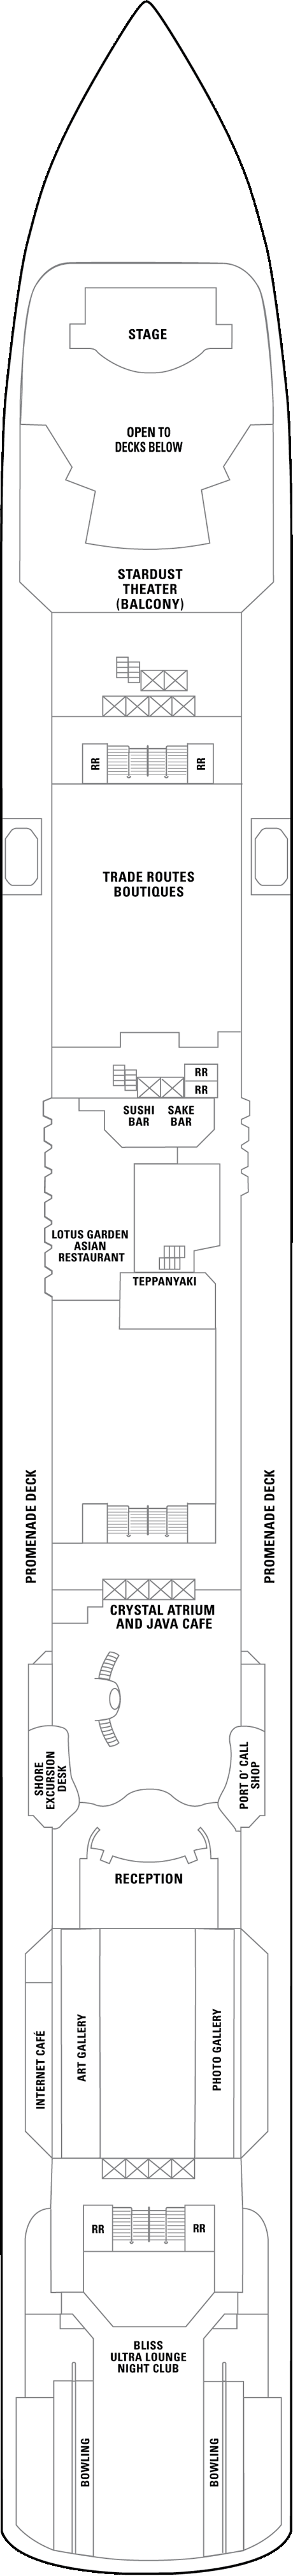 Norwegian Pearl Deck 7 layout